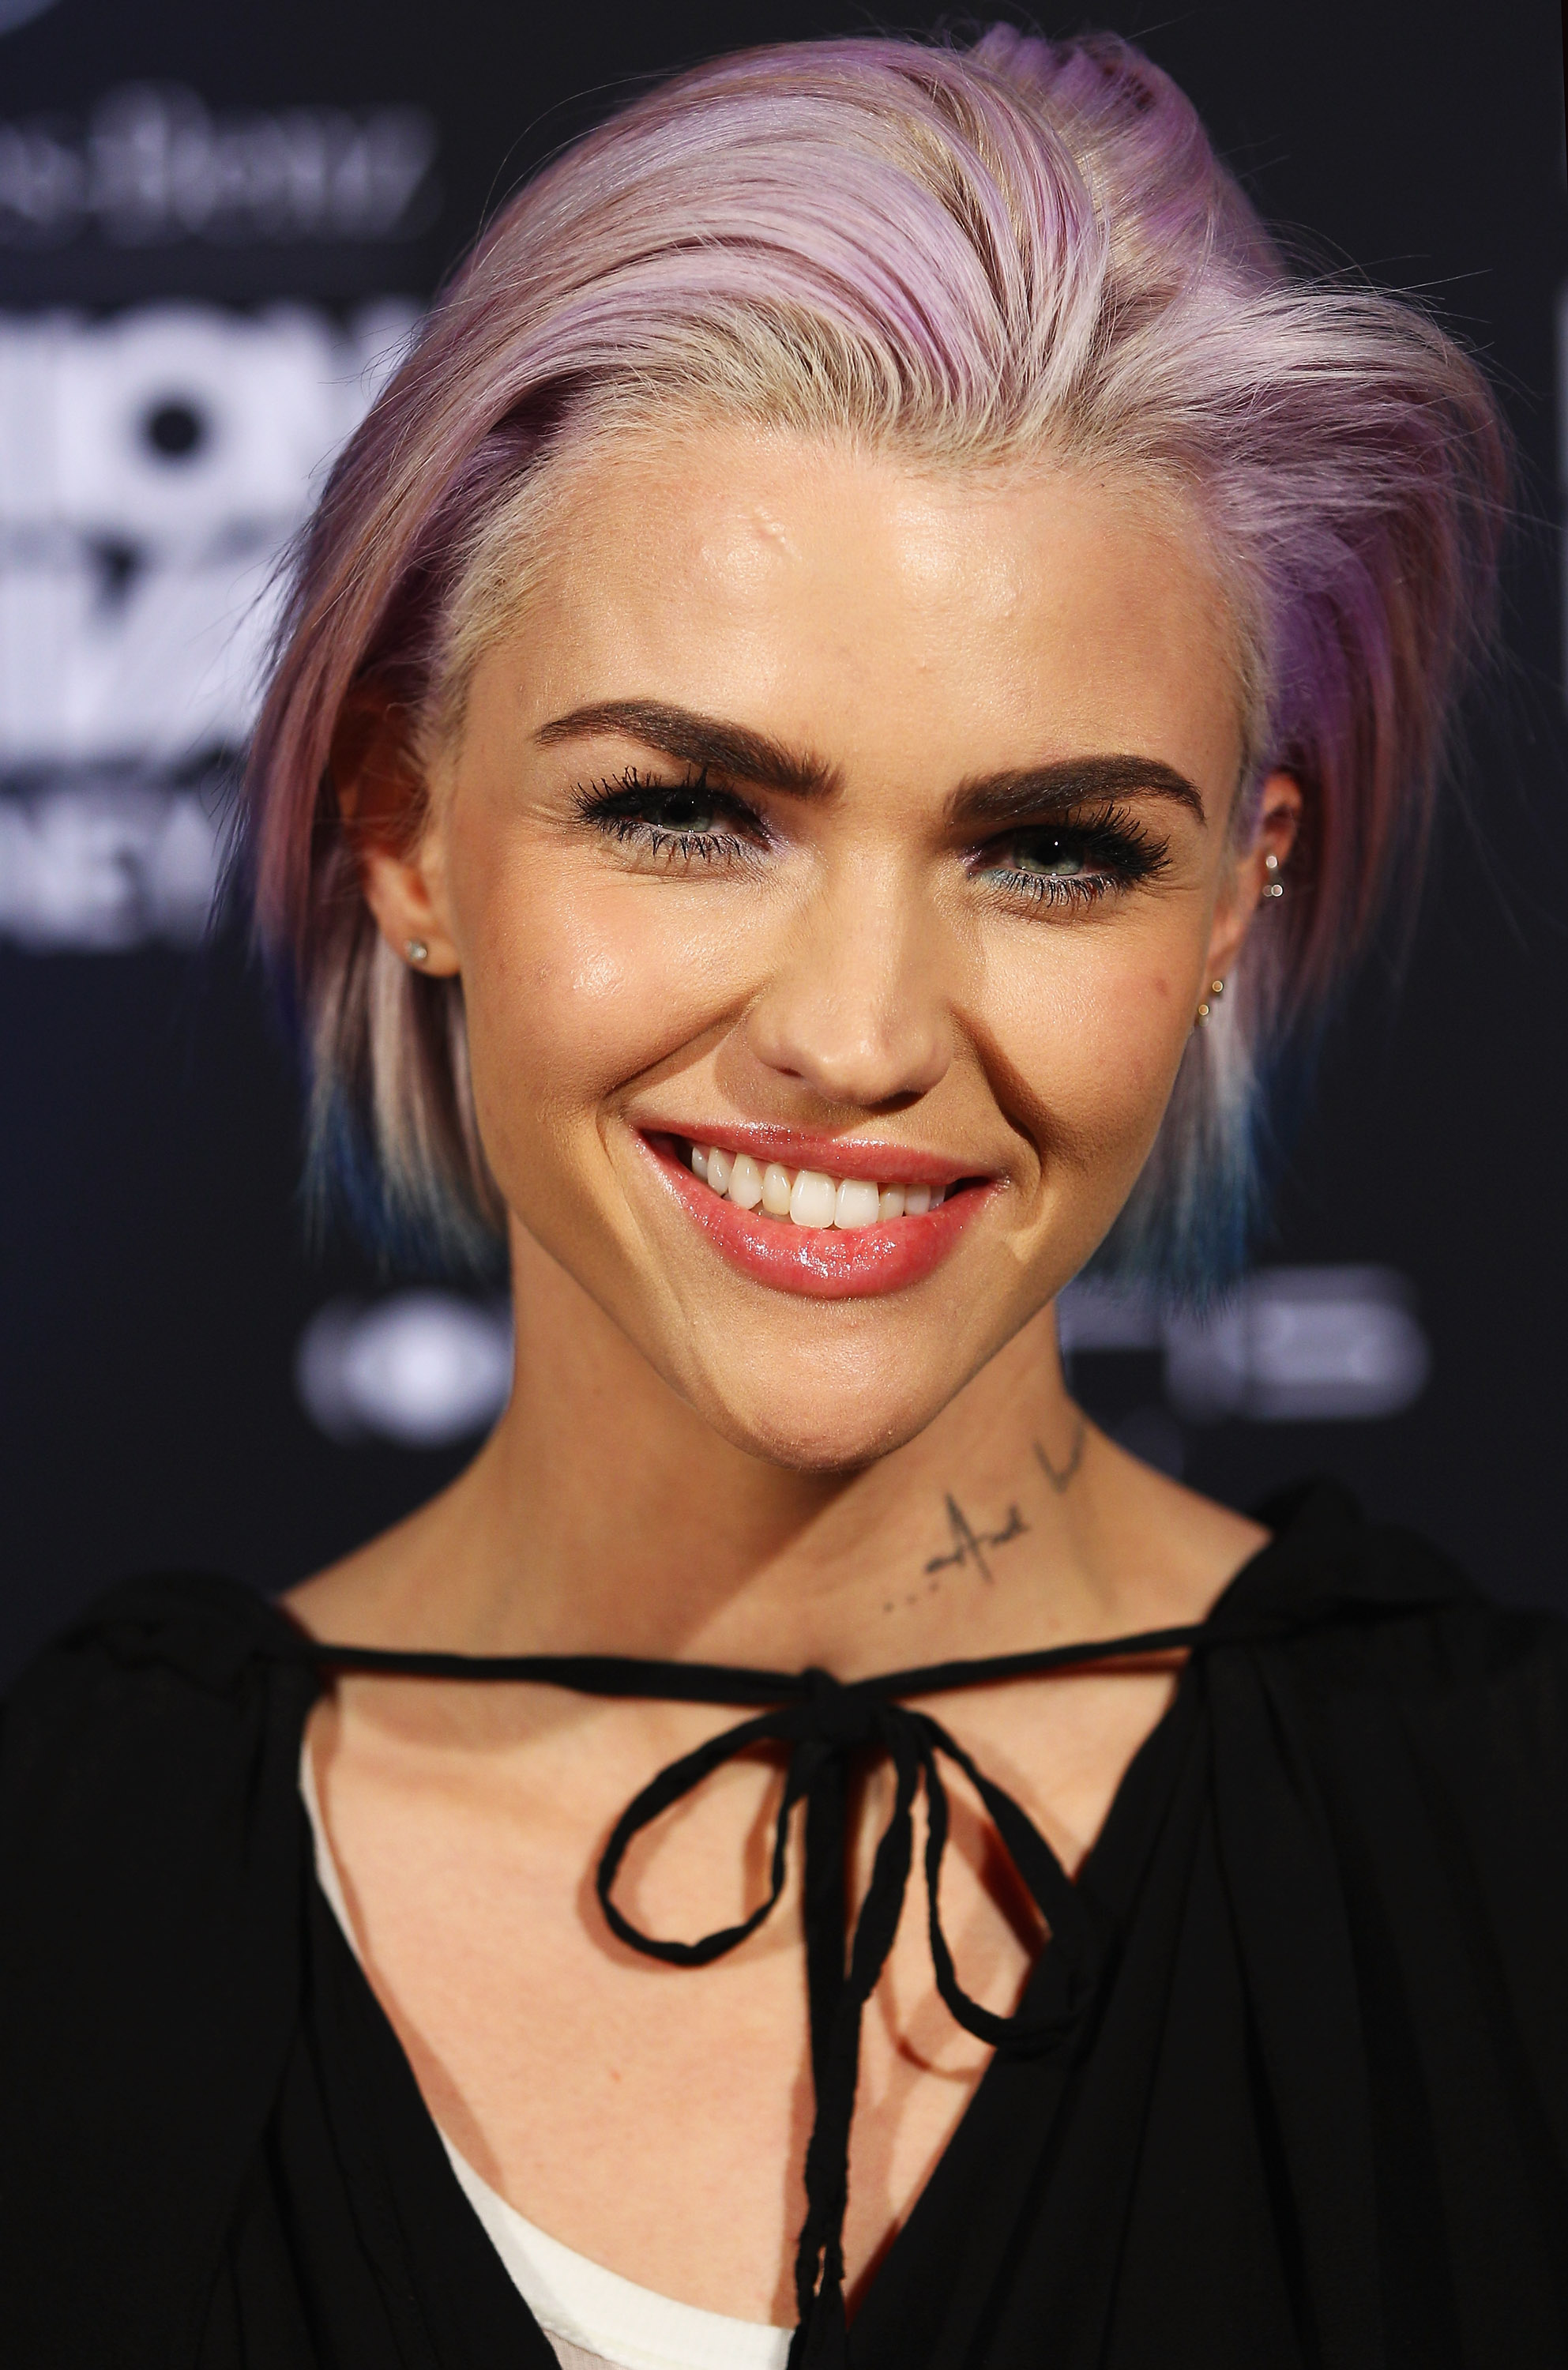 Ruby rose long hair – fashion inspiration for most women – HairStyles for Woman